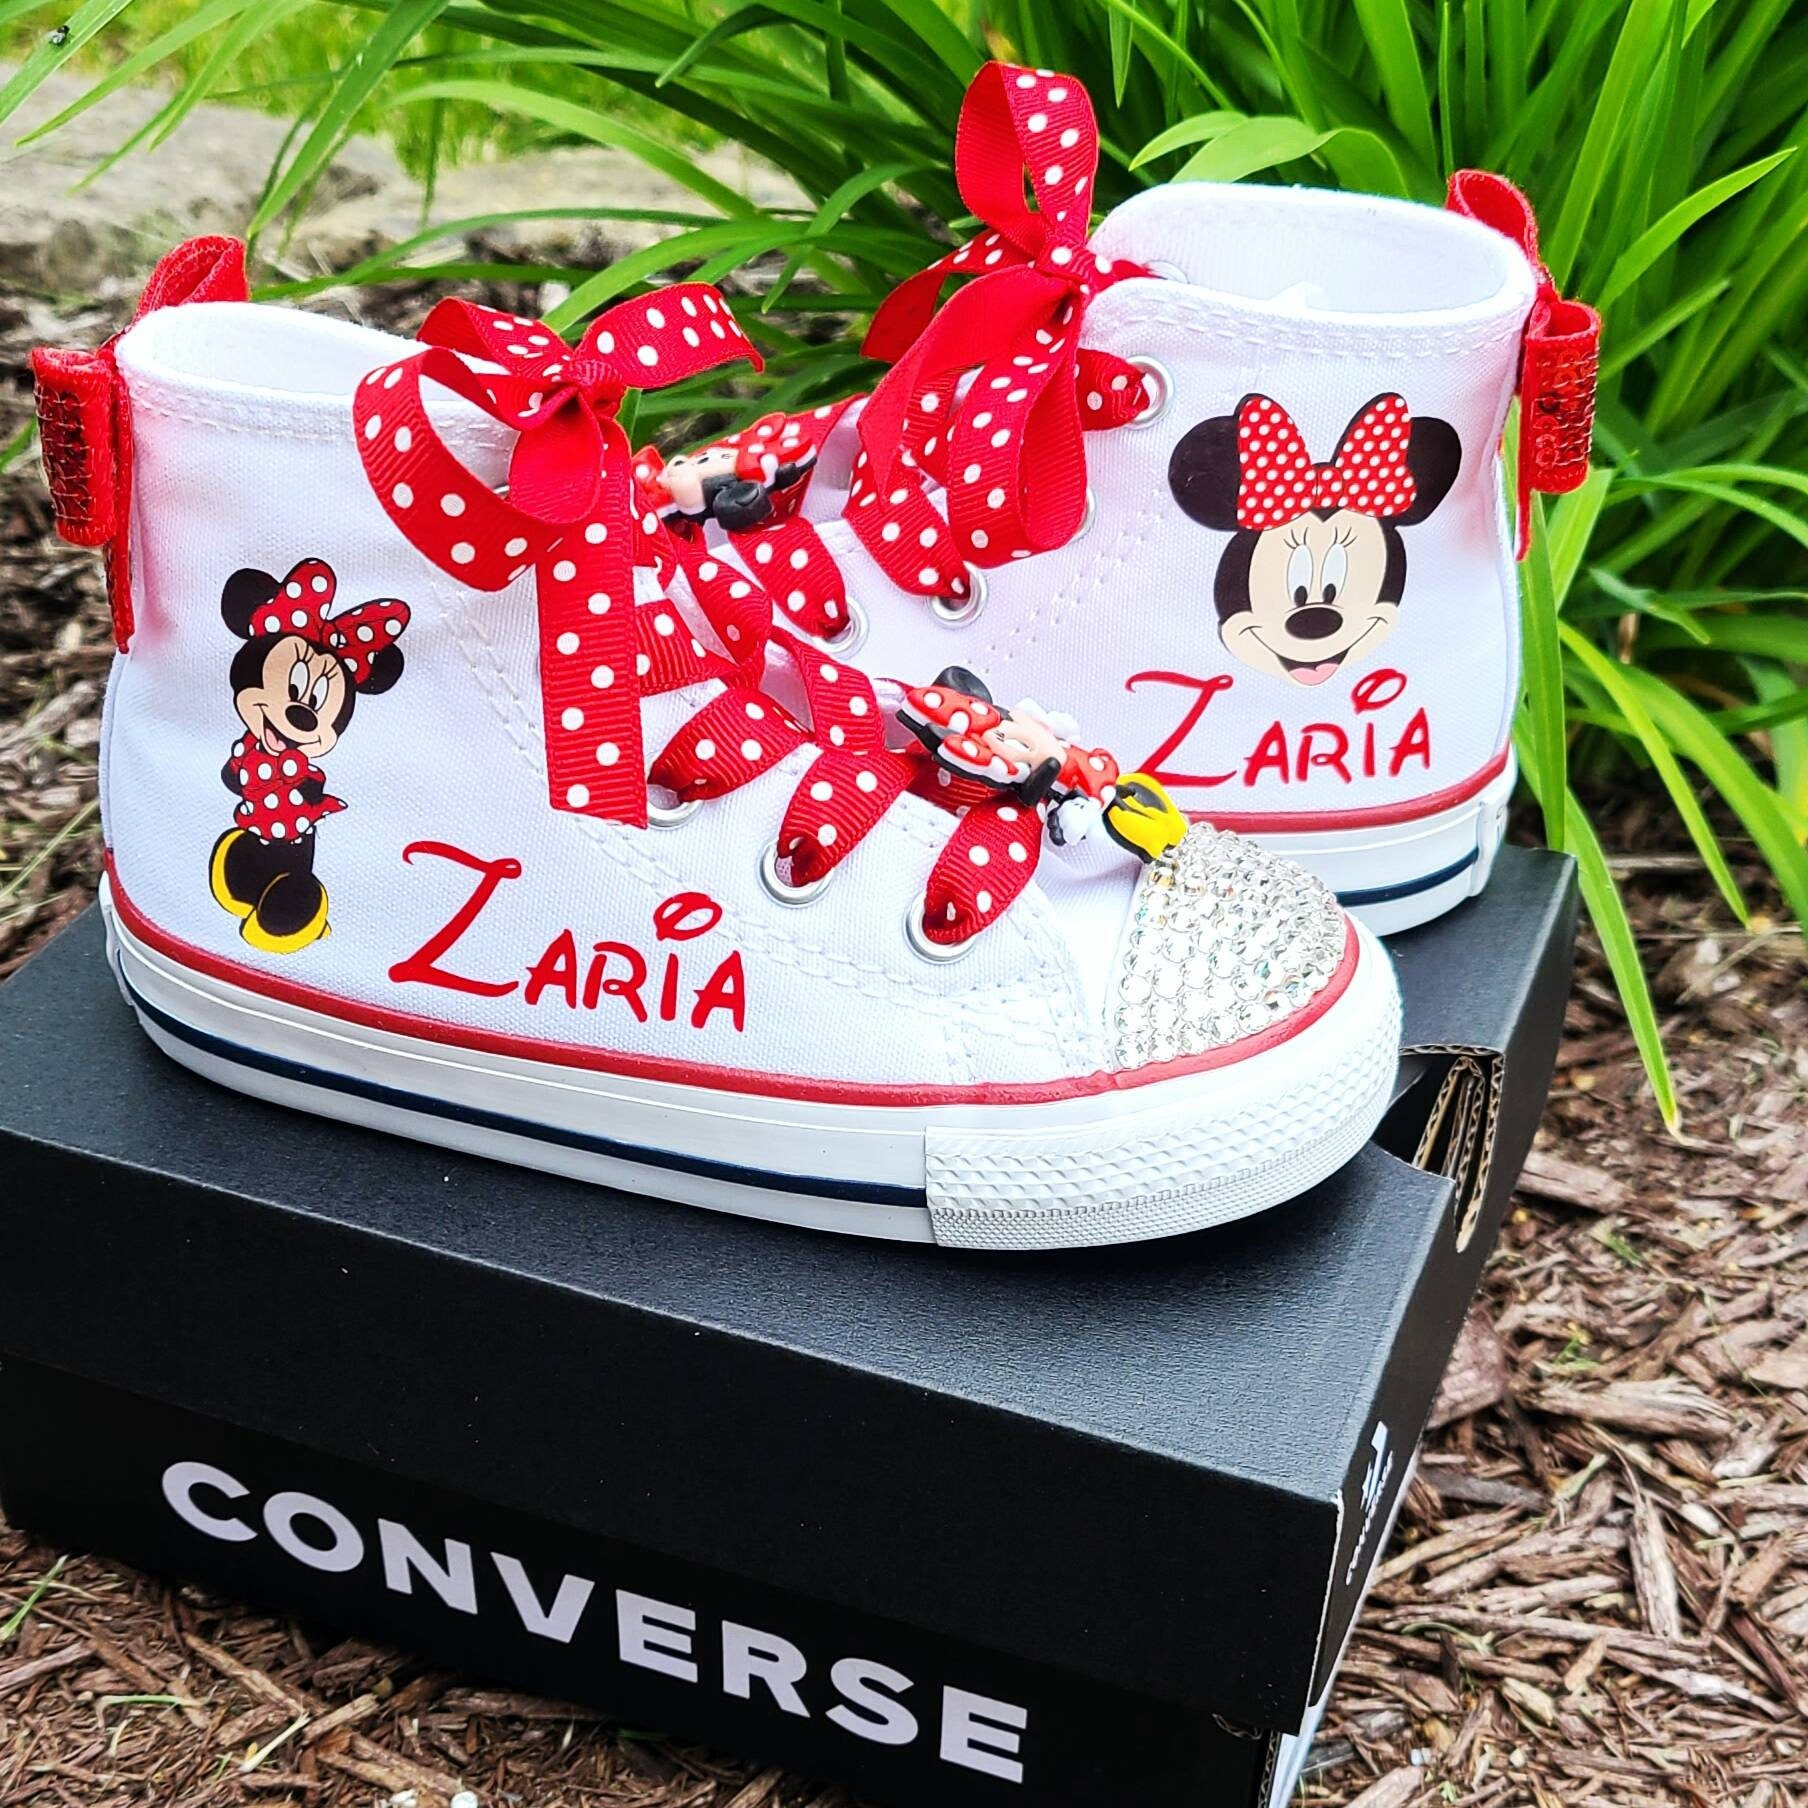 Minnie Mouse Converse, Personalized Name, White High Tops, Girls Shoes, Crystals Option